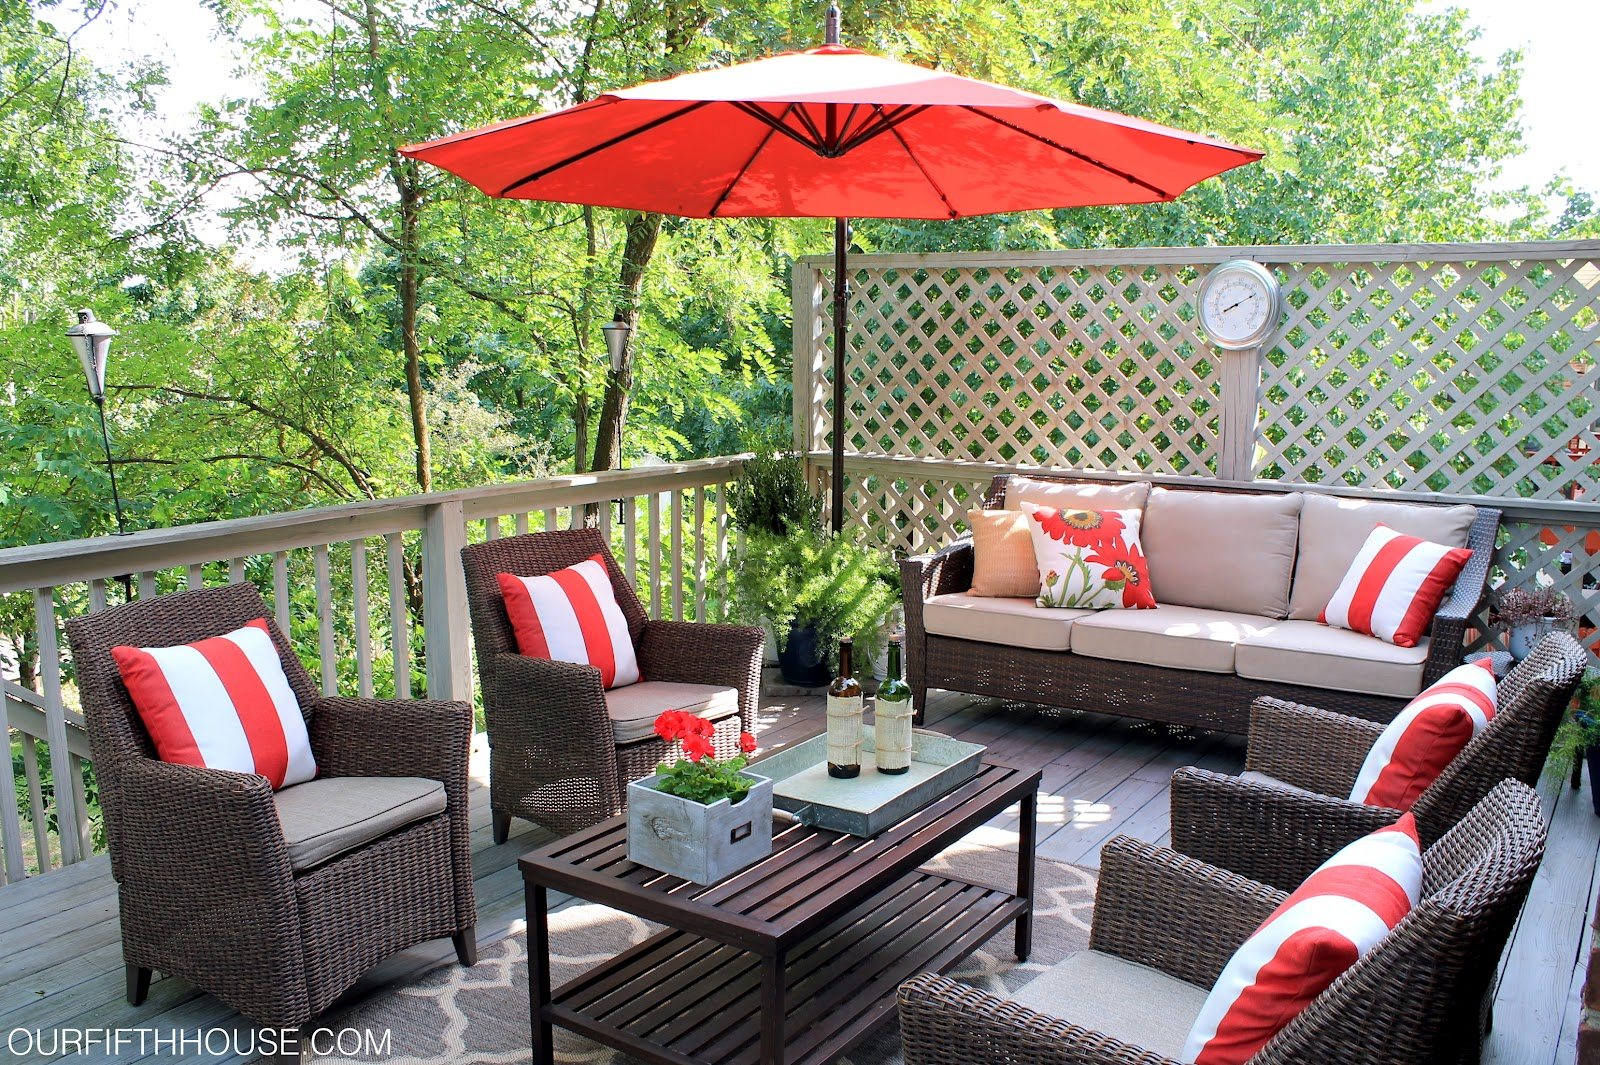 Outdoor living deck updates our fifth house for Porch furniture